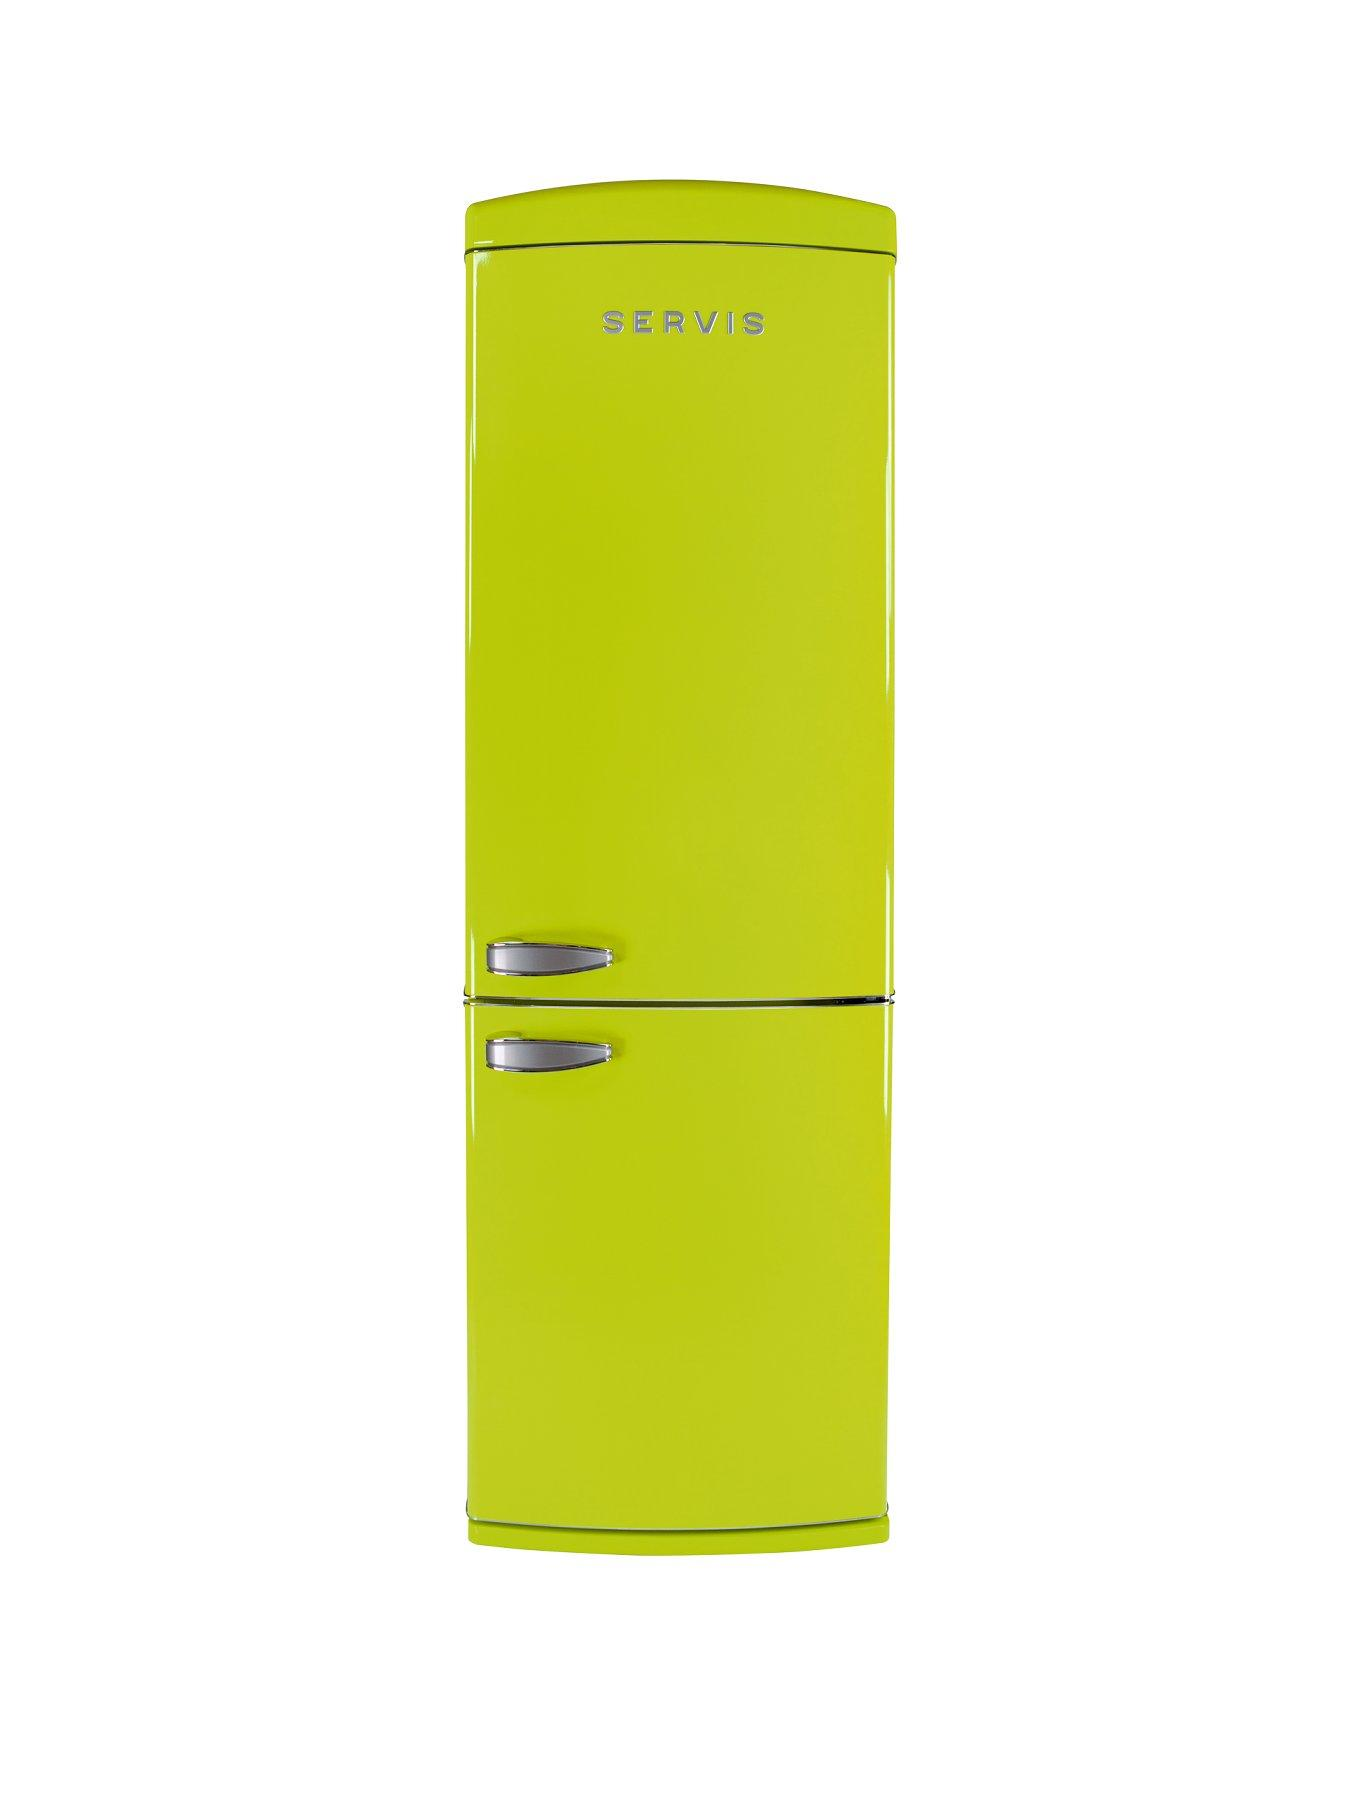 C60185NFPT 60cm No Frost Fridge Freezer  Green